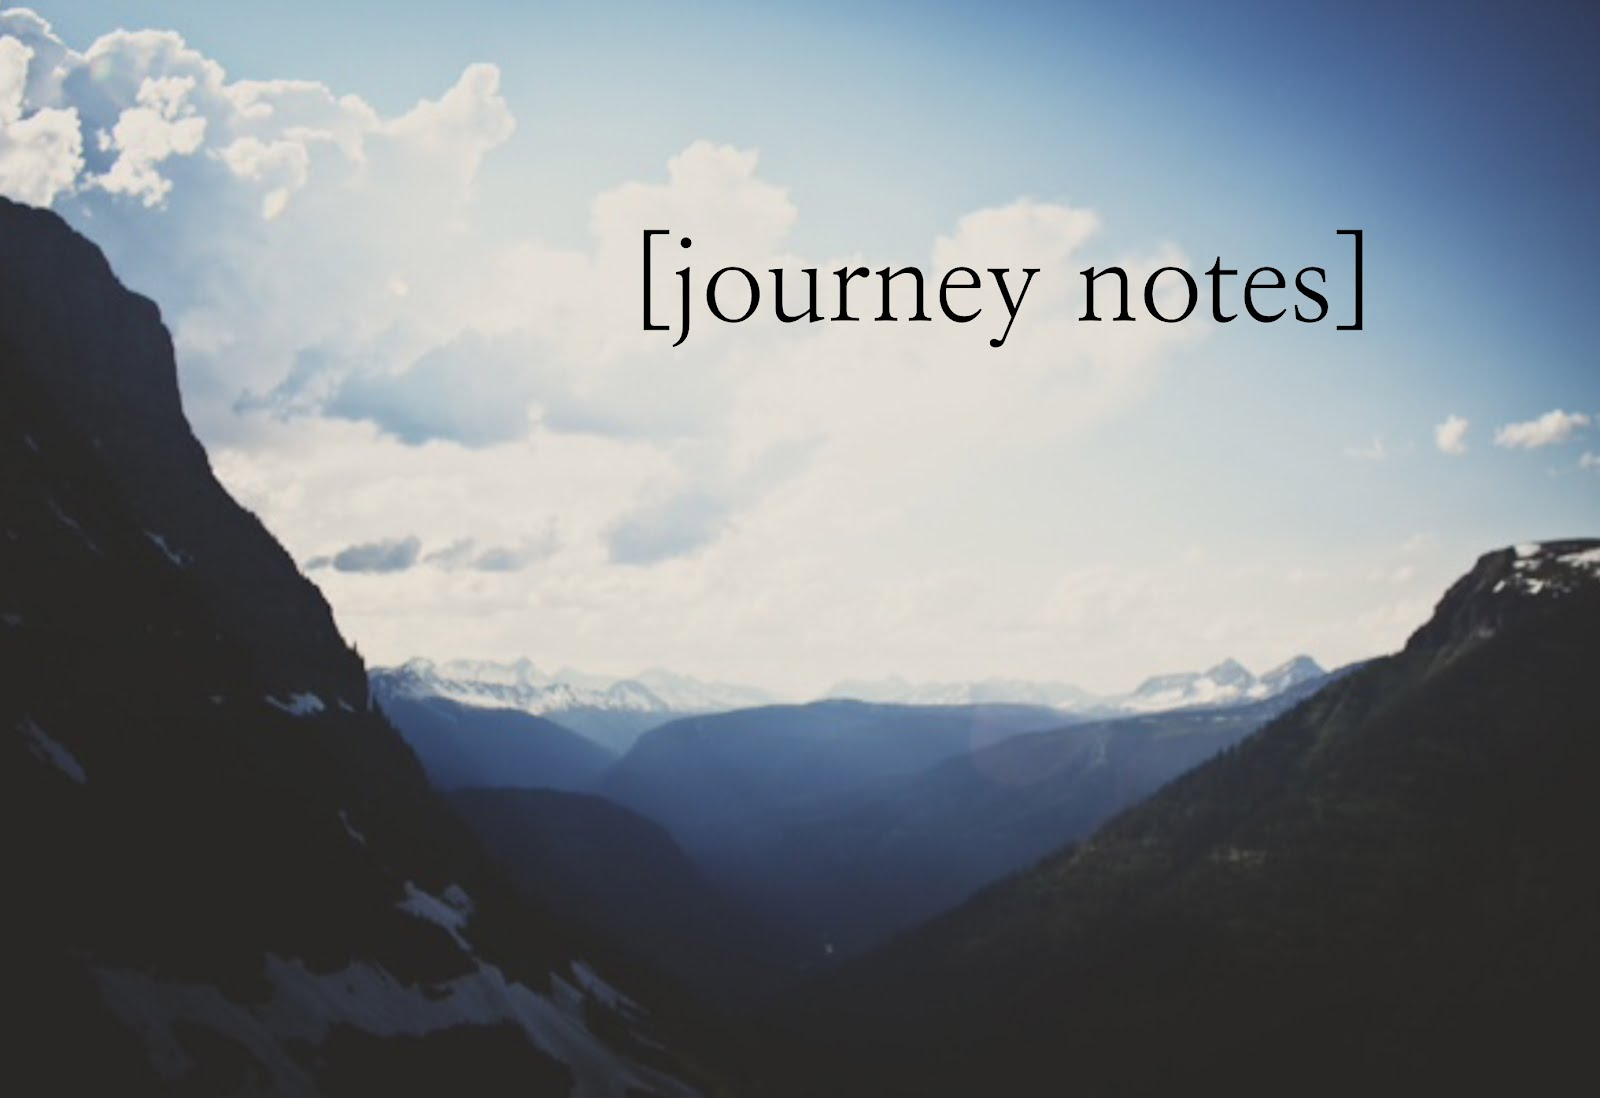 [journey notes]